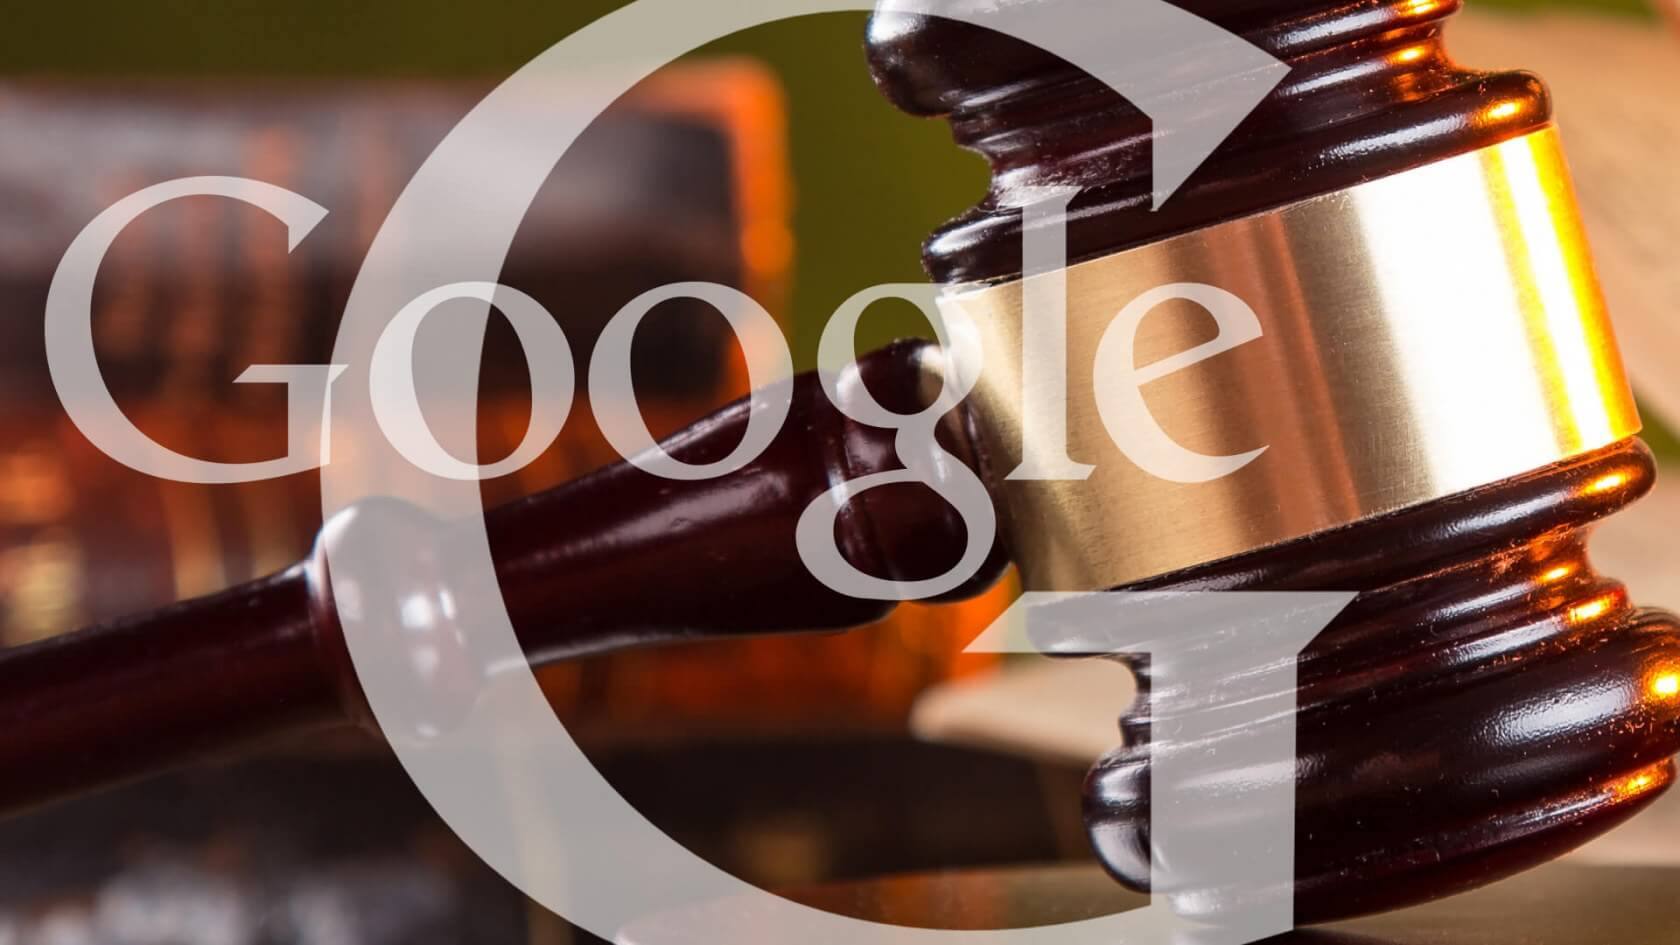 UK court blocks lawsuit against Google over iPhone tracking claims